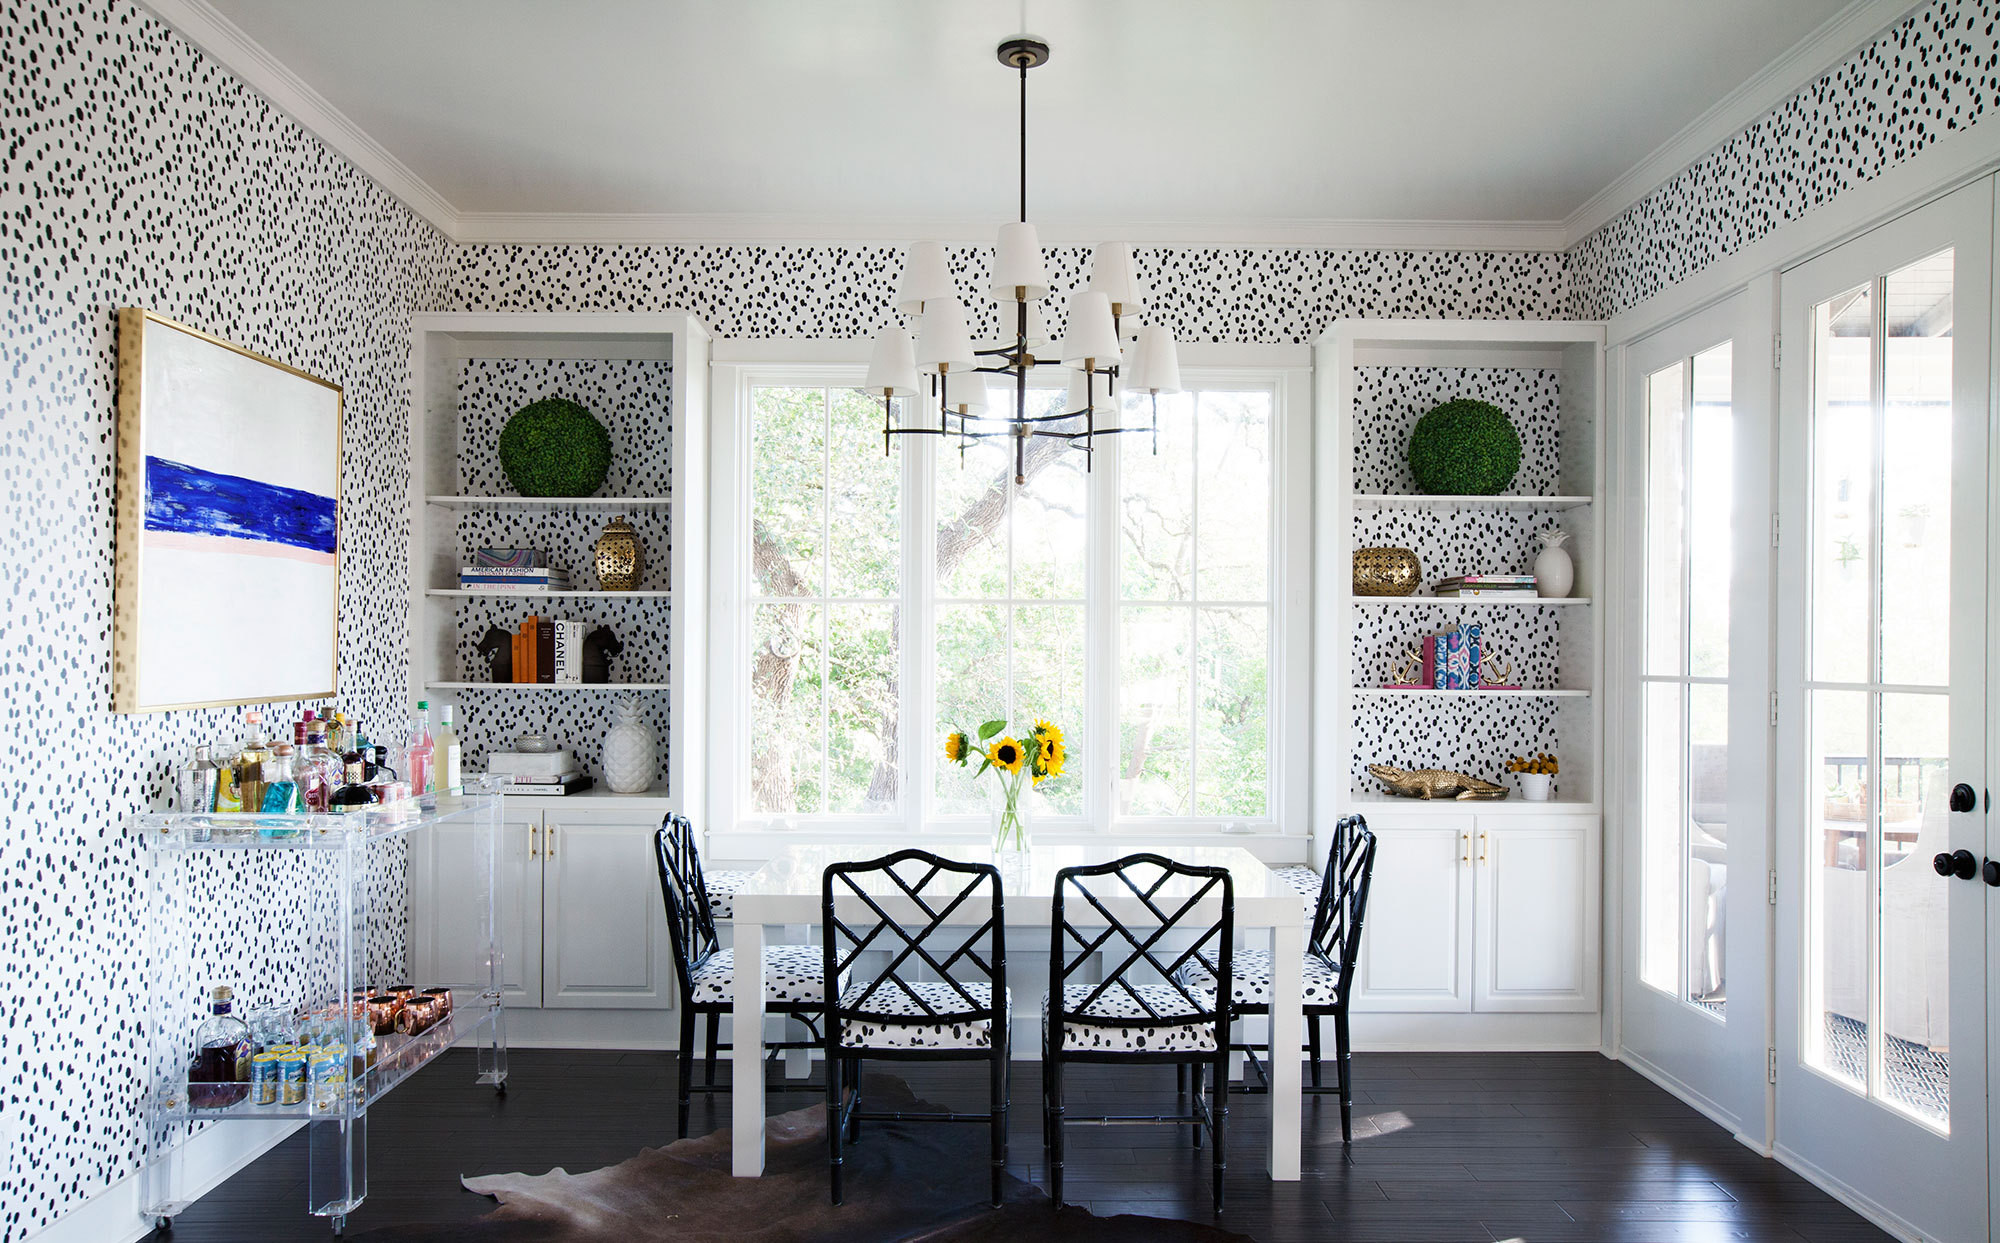 The Pattern Clad Breakfast Nook In The Kitchen Of Designer Katie Kimeu0027s  Austin Home.